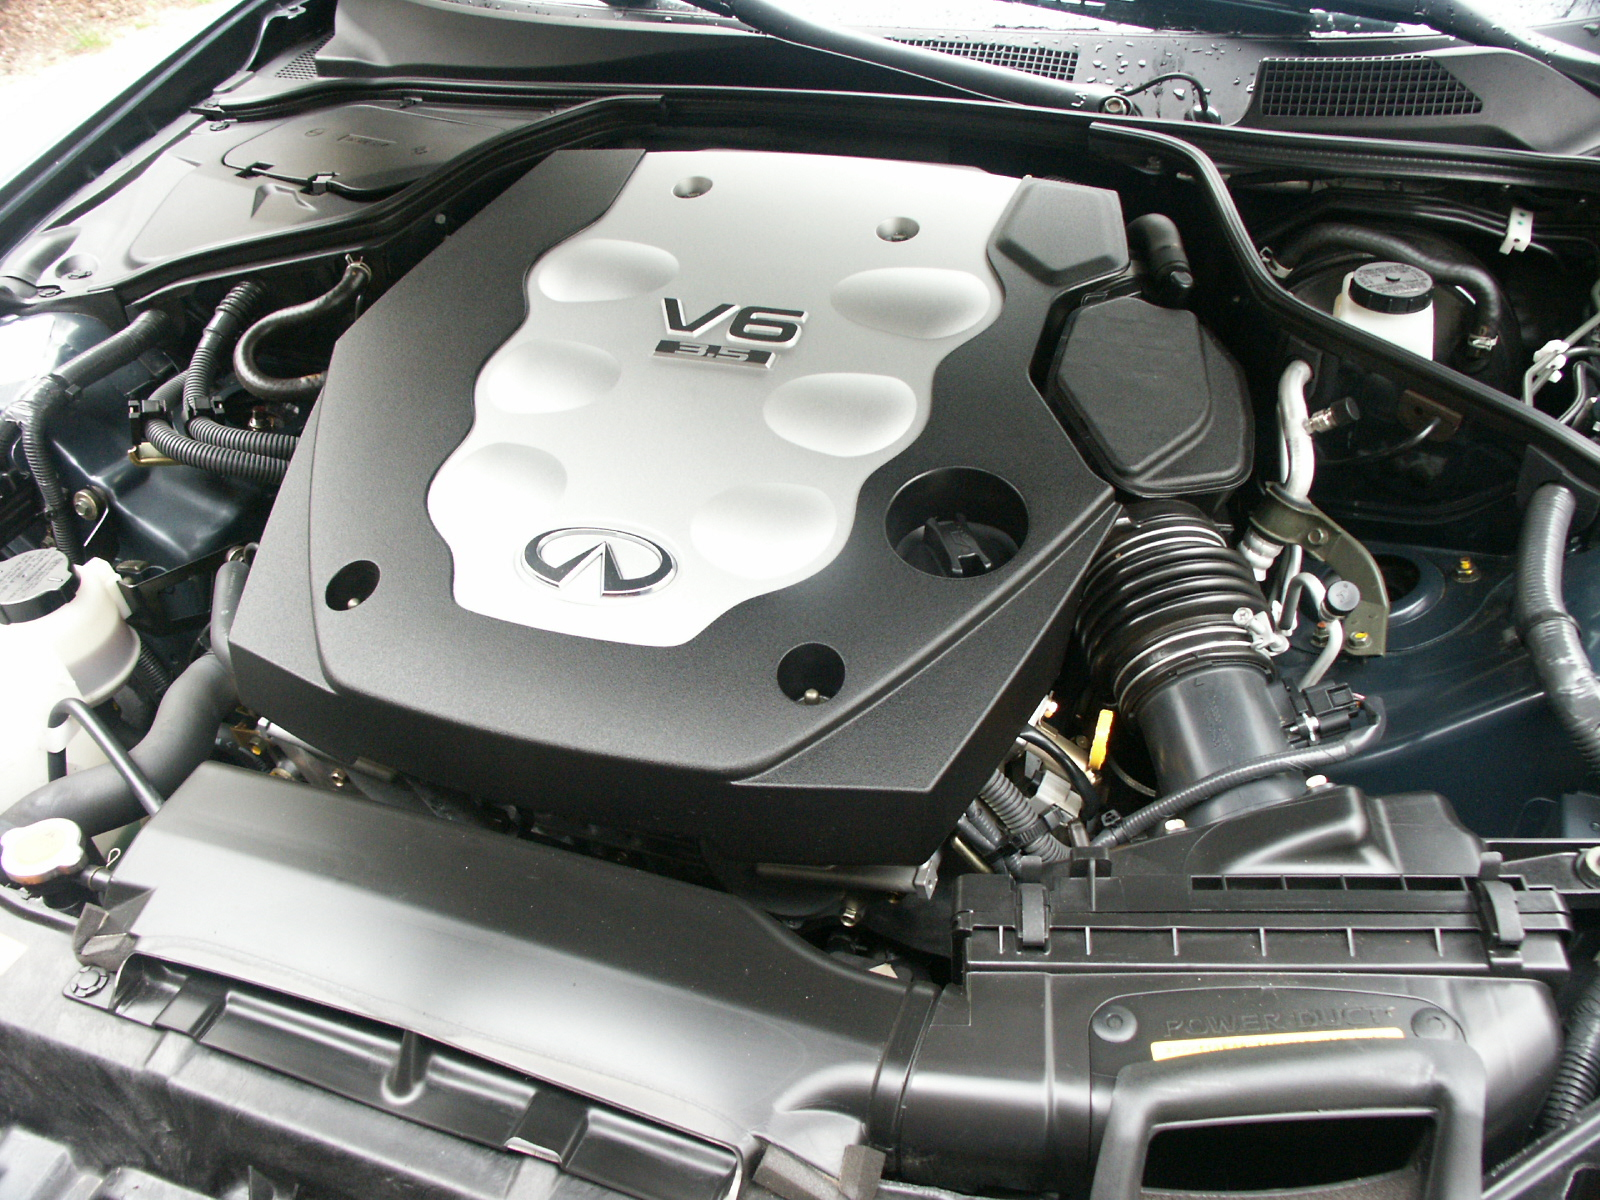 005210.7 lg infiniti g35 v6 engine infiniti engine problems and solutions 2008 Infiniti G35 Sedan at bayanpartner.co